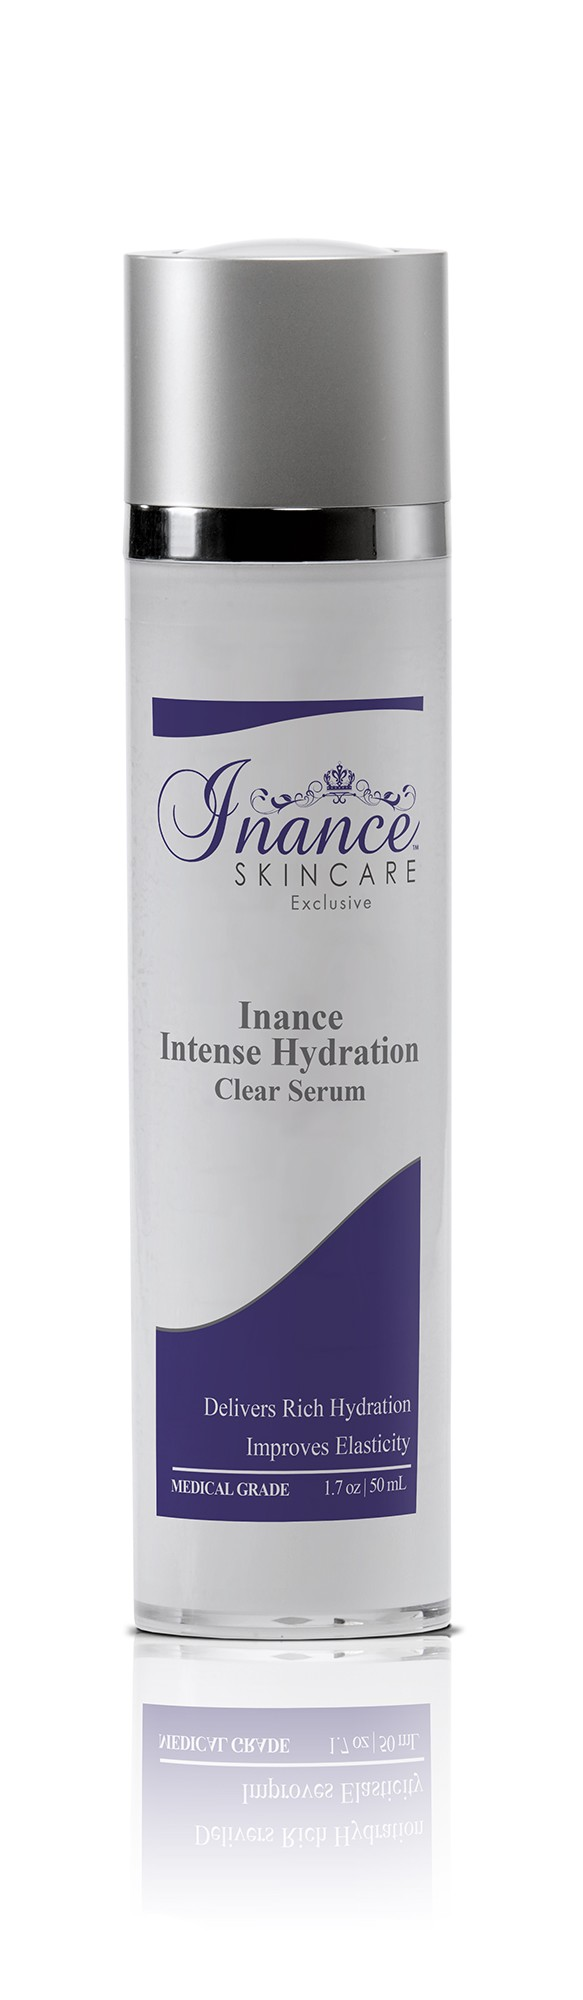 Inance Exclusive Intense Hydration Clear Serum 1.7 oz